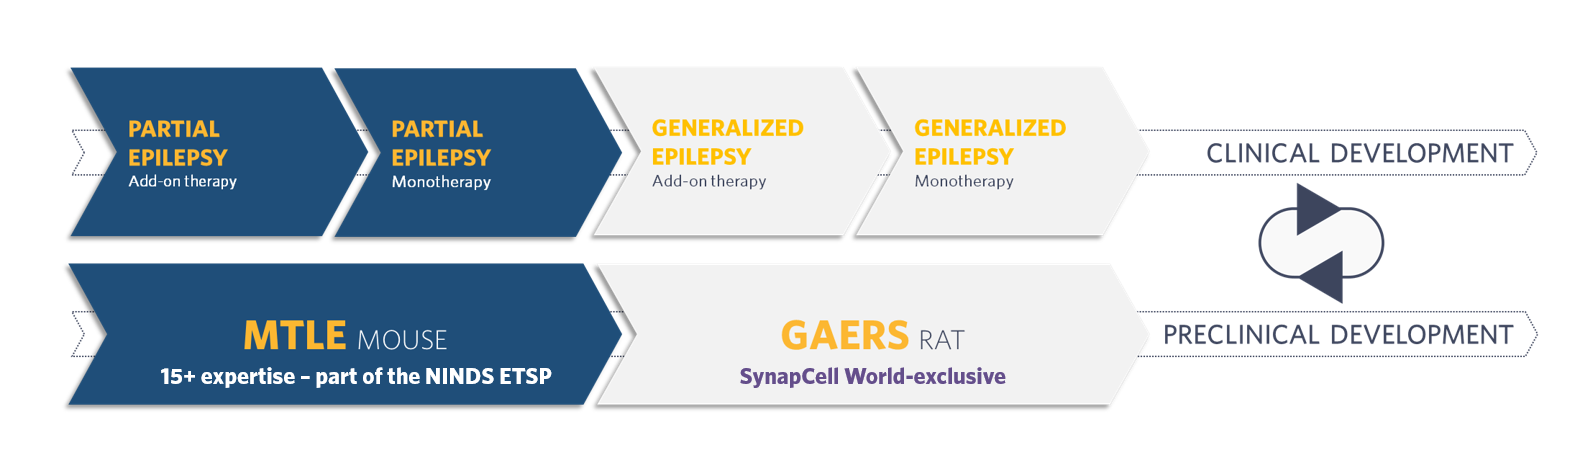 AED-CLINICAL-ROADMAP-SynapCell-In-vivo-efficacy-Testing-on-CNS-disorders